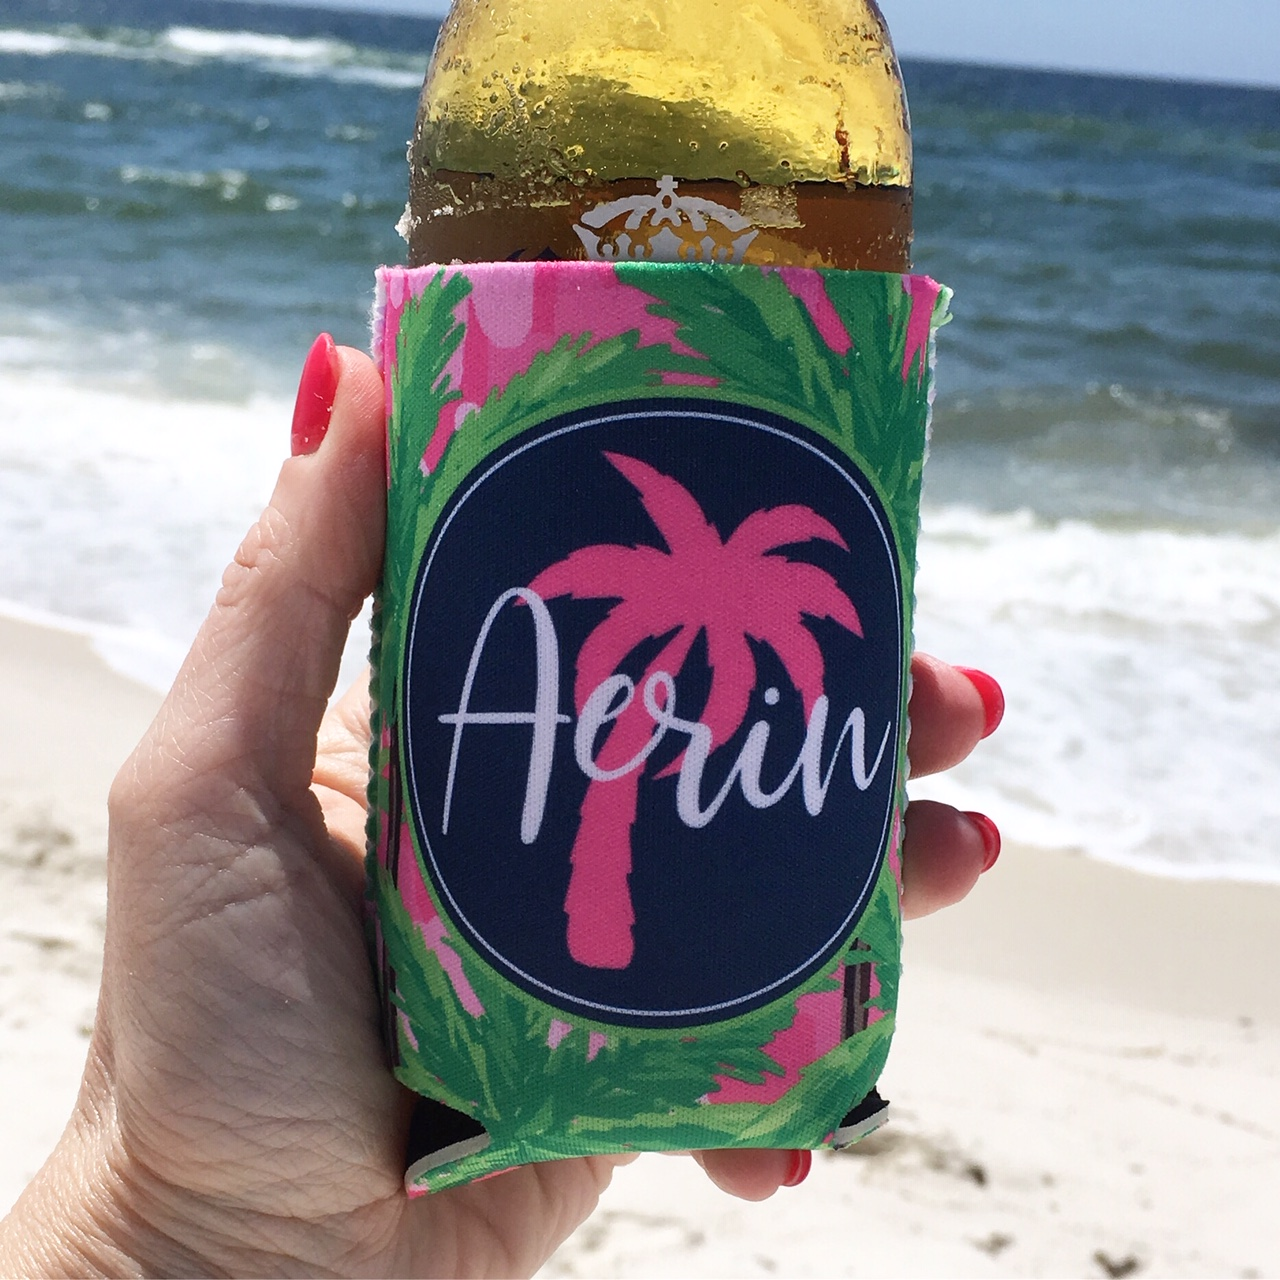 Beach Vacation Koozies or coolies - Life is Better at the Beach - pink palm trees - hand